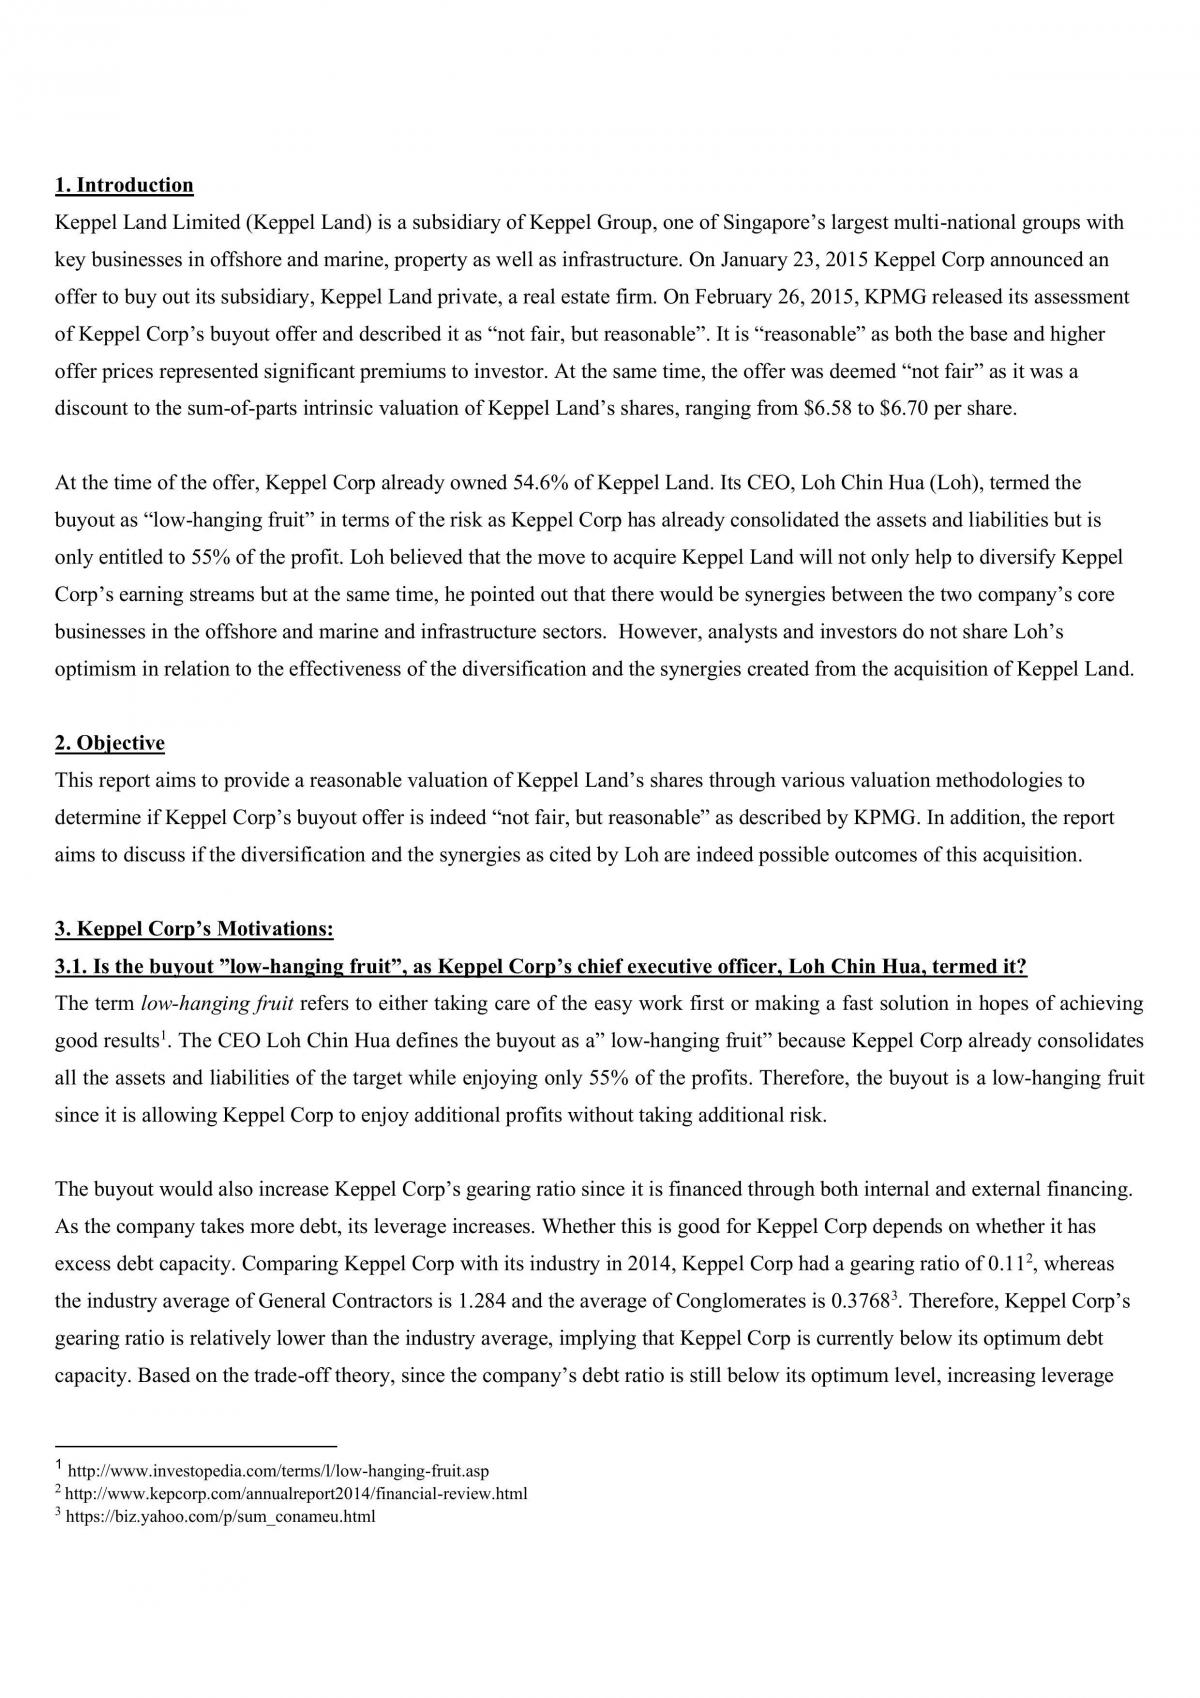 FIN3101 Corporate Finance Case Project Report: Keppel  - Page 2